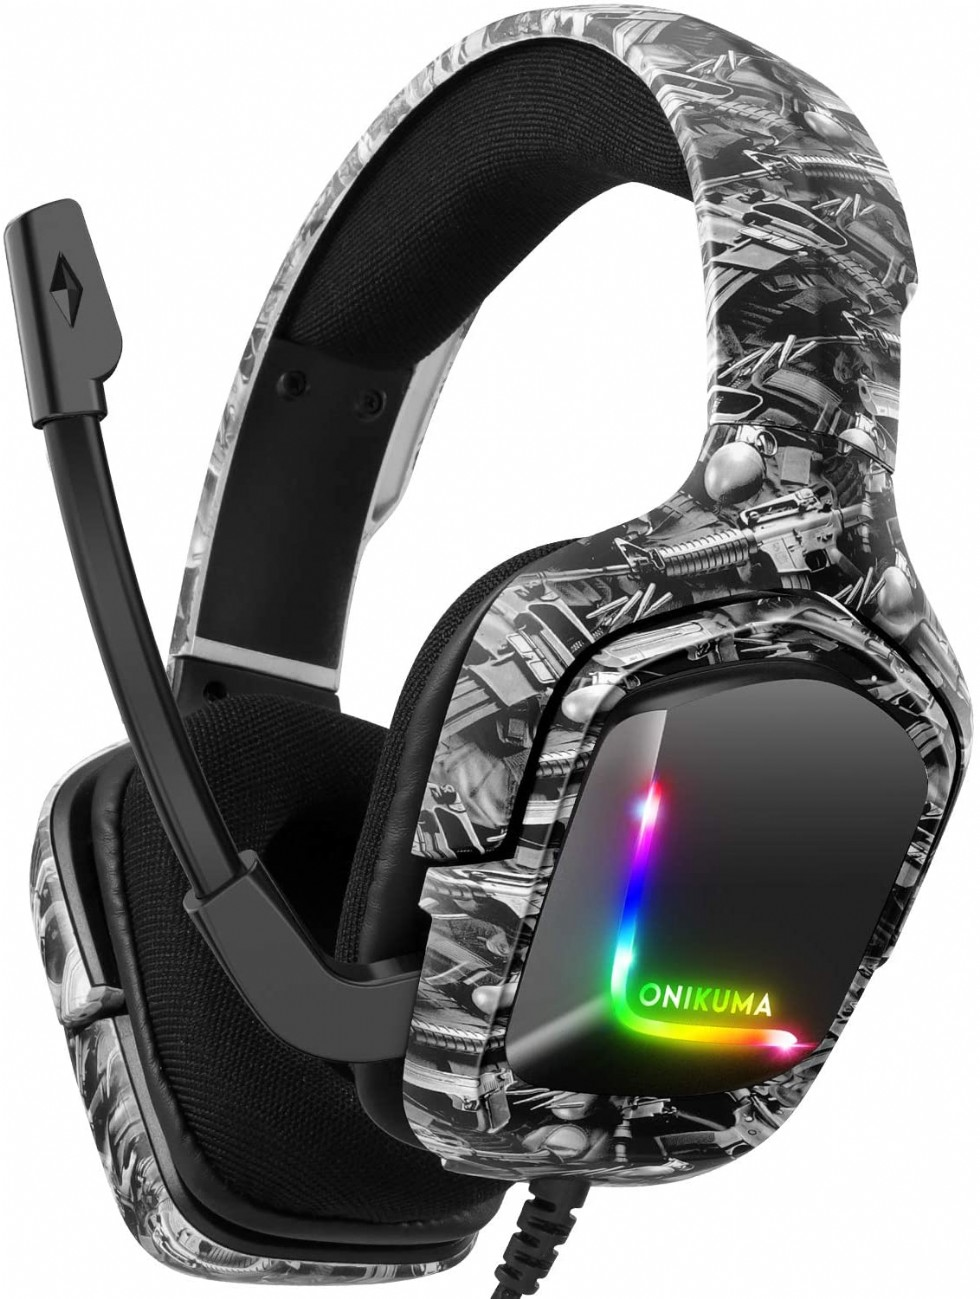 Gaming Headset For Ps4 Headsets With Mic, Stereo Surround Sound